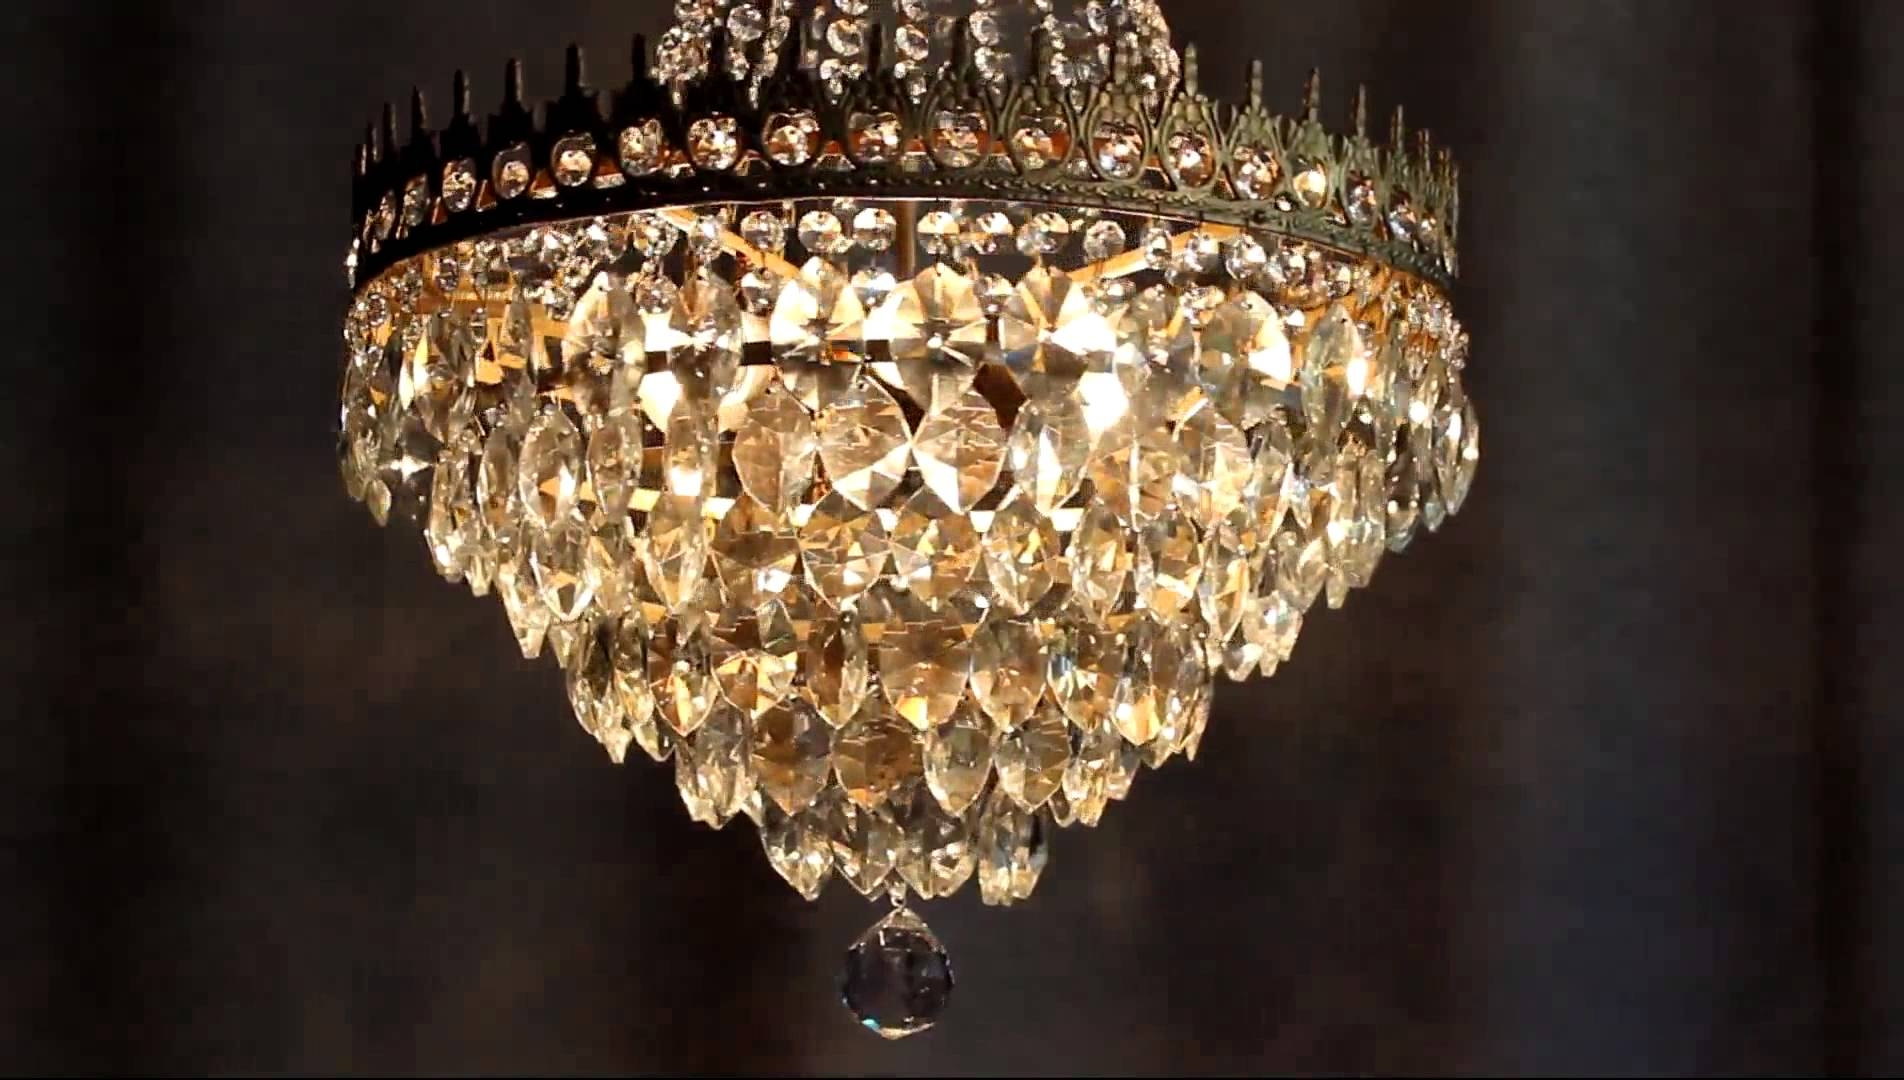 Huge Antique Luster Crystal Candelabra Chandelier Lighting Brass Regarding Huge Chandeliers (#4 of 12)